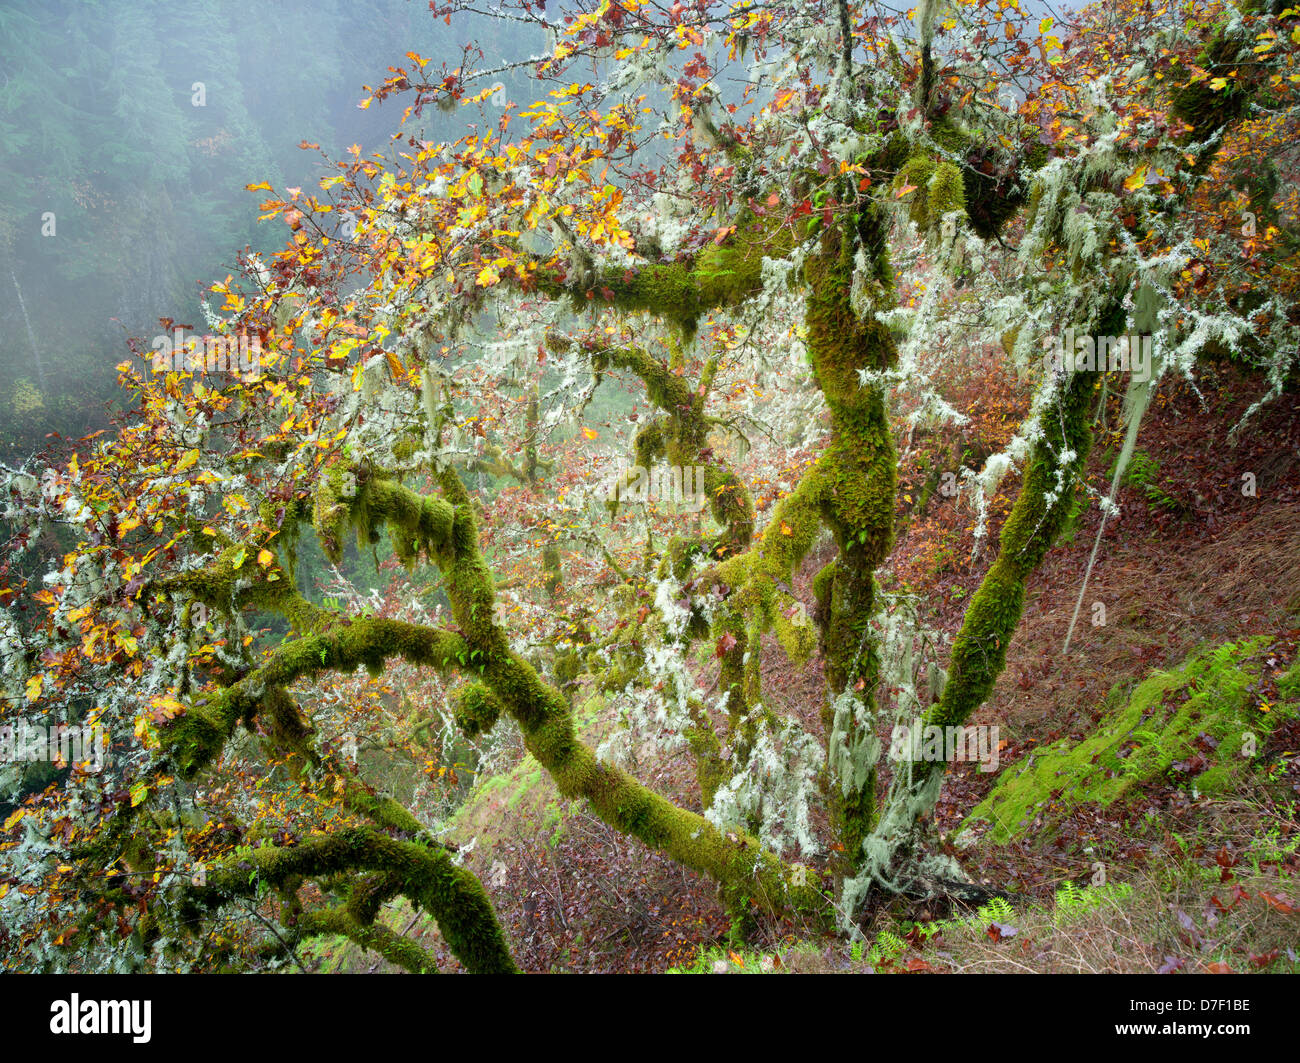 Oak Trees Stock Photos & Oak Trees Stock Images - Alamy